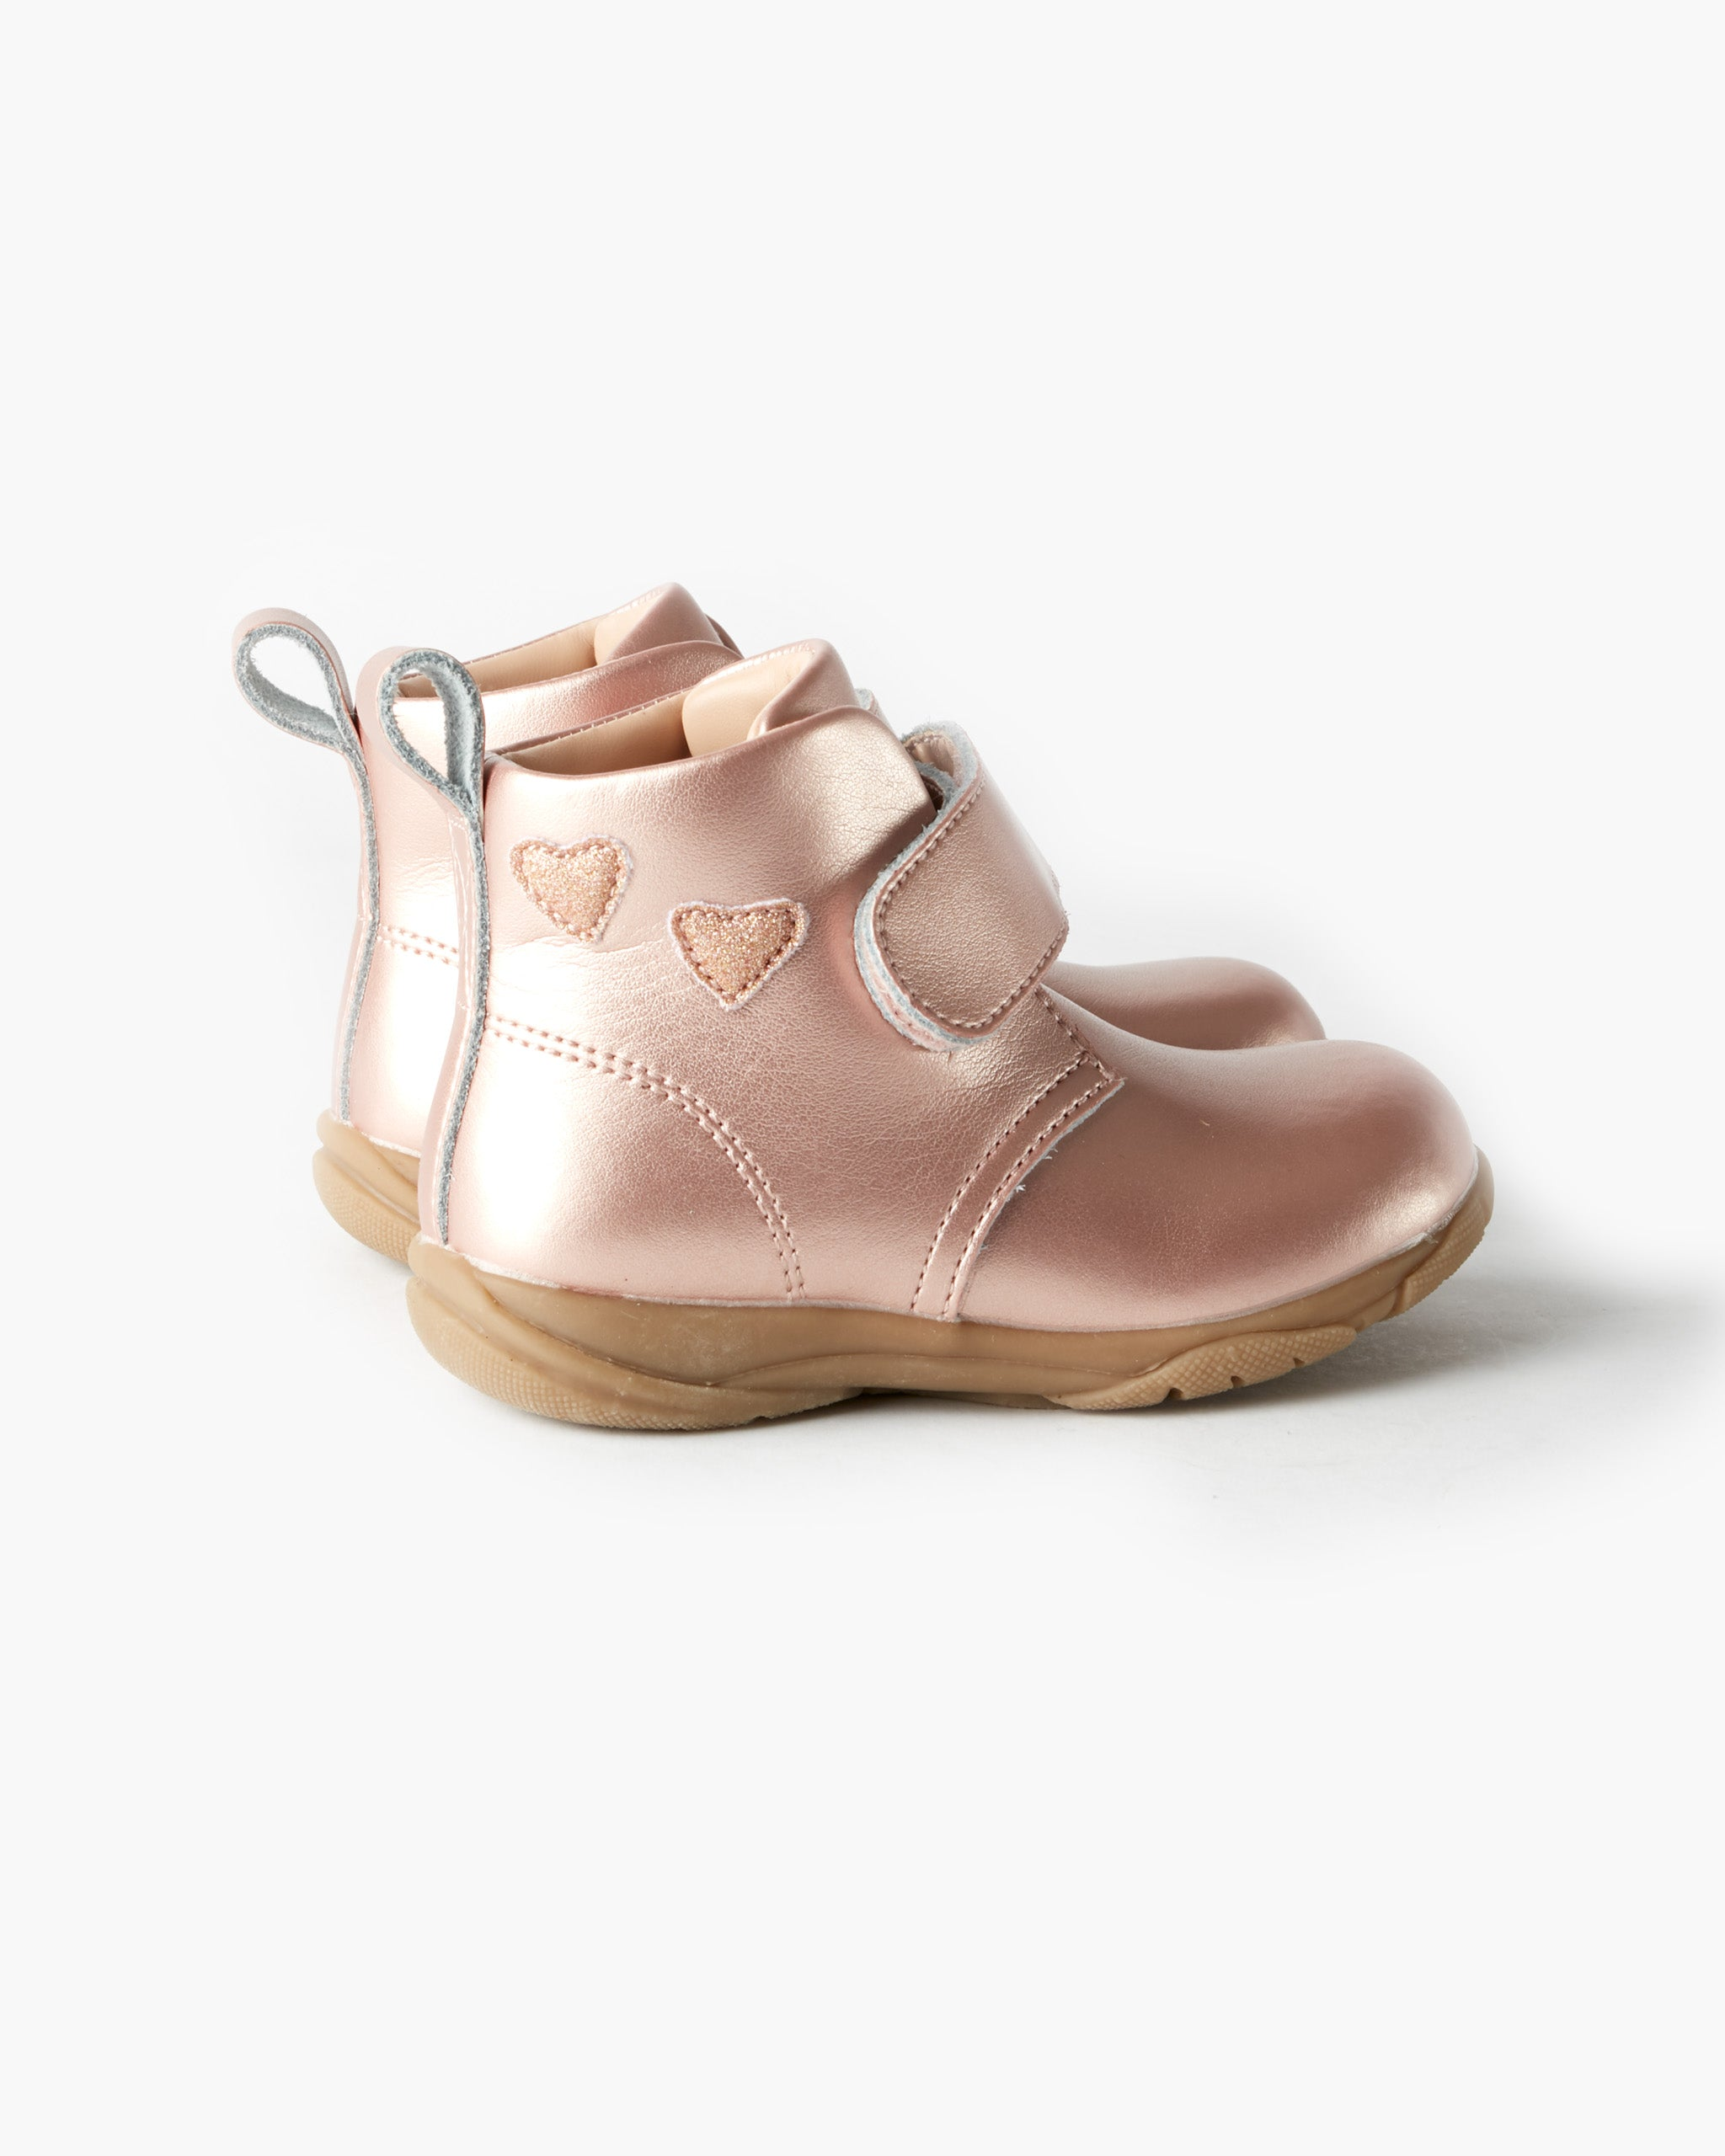 Rover Heart Leather Boot - Rose Gold